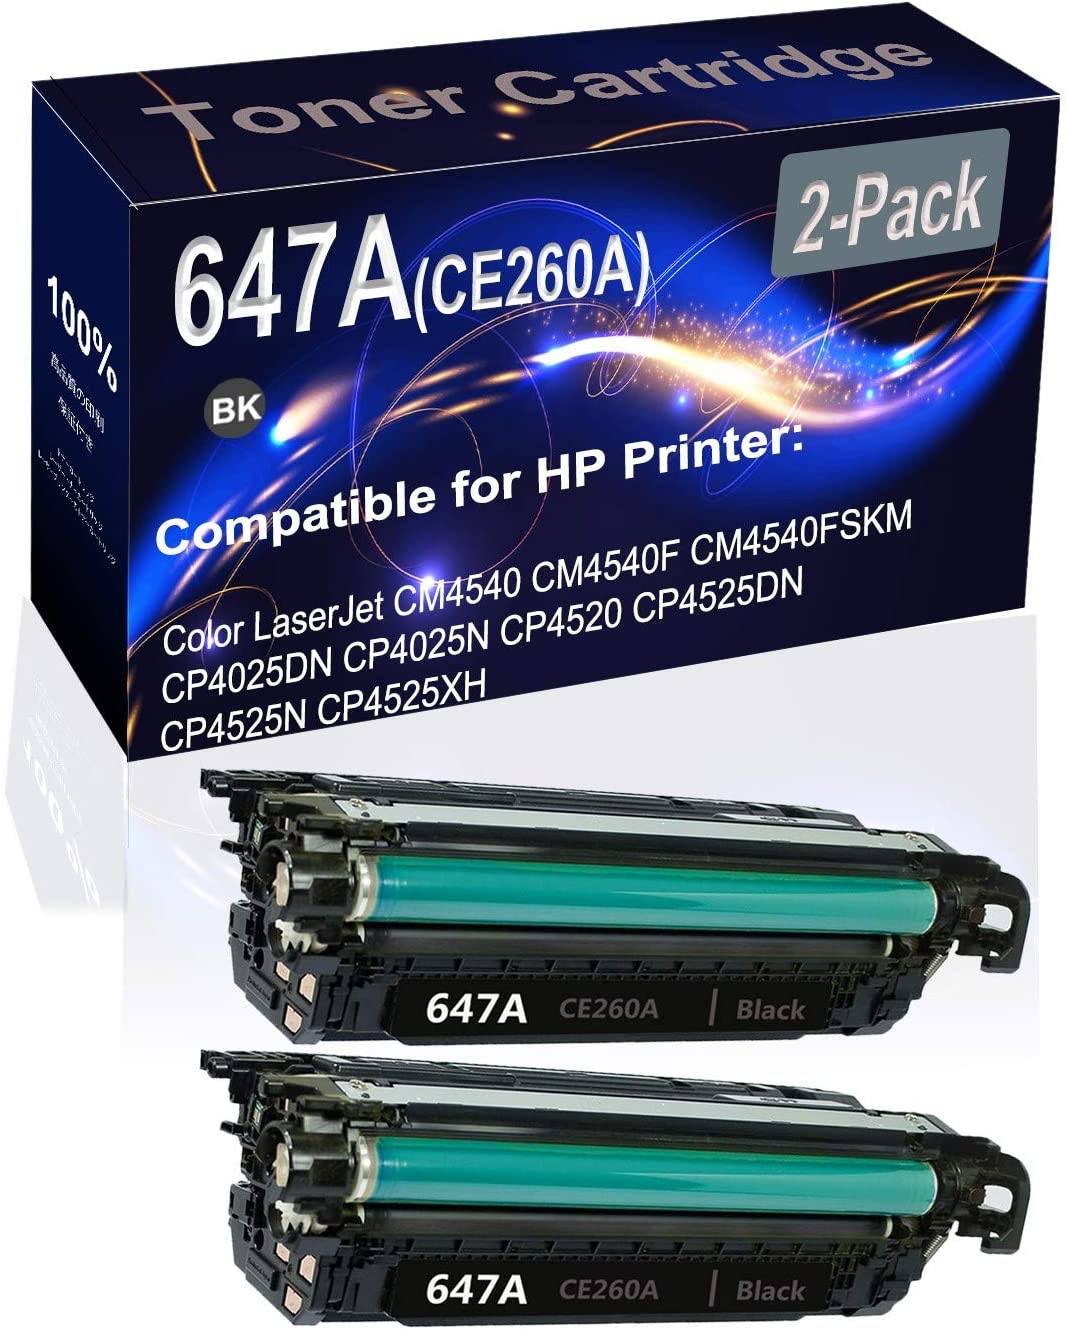 2-Pack (Black) Compatible CP4025 CP4525 Laser Toner Cartridge (High Capacity) Replacement for HP 647A (CE260A) Printer Toner Cartridge